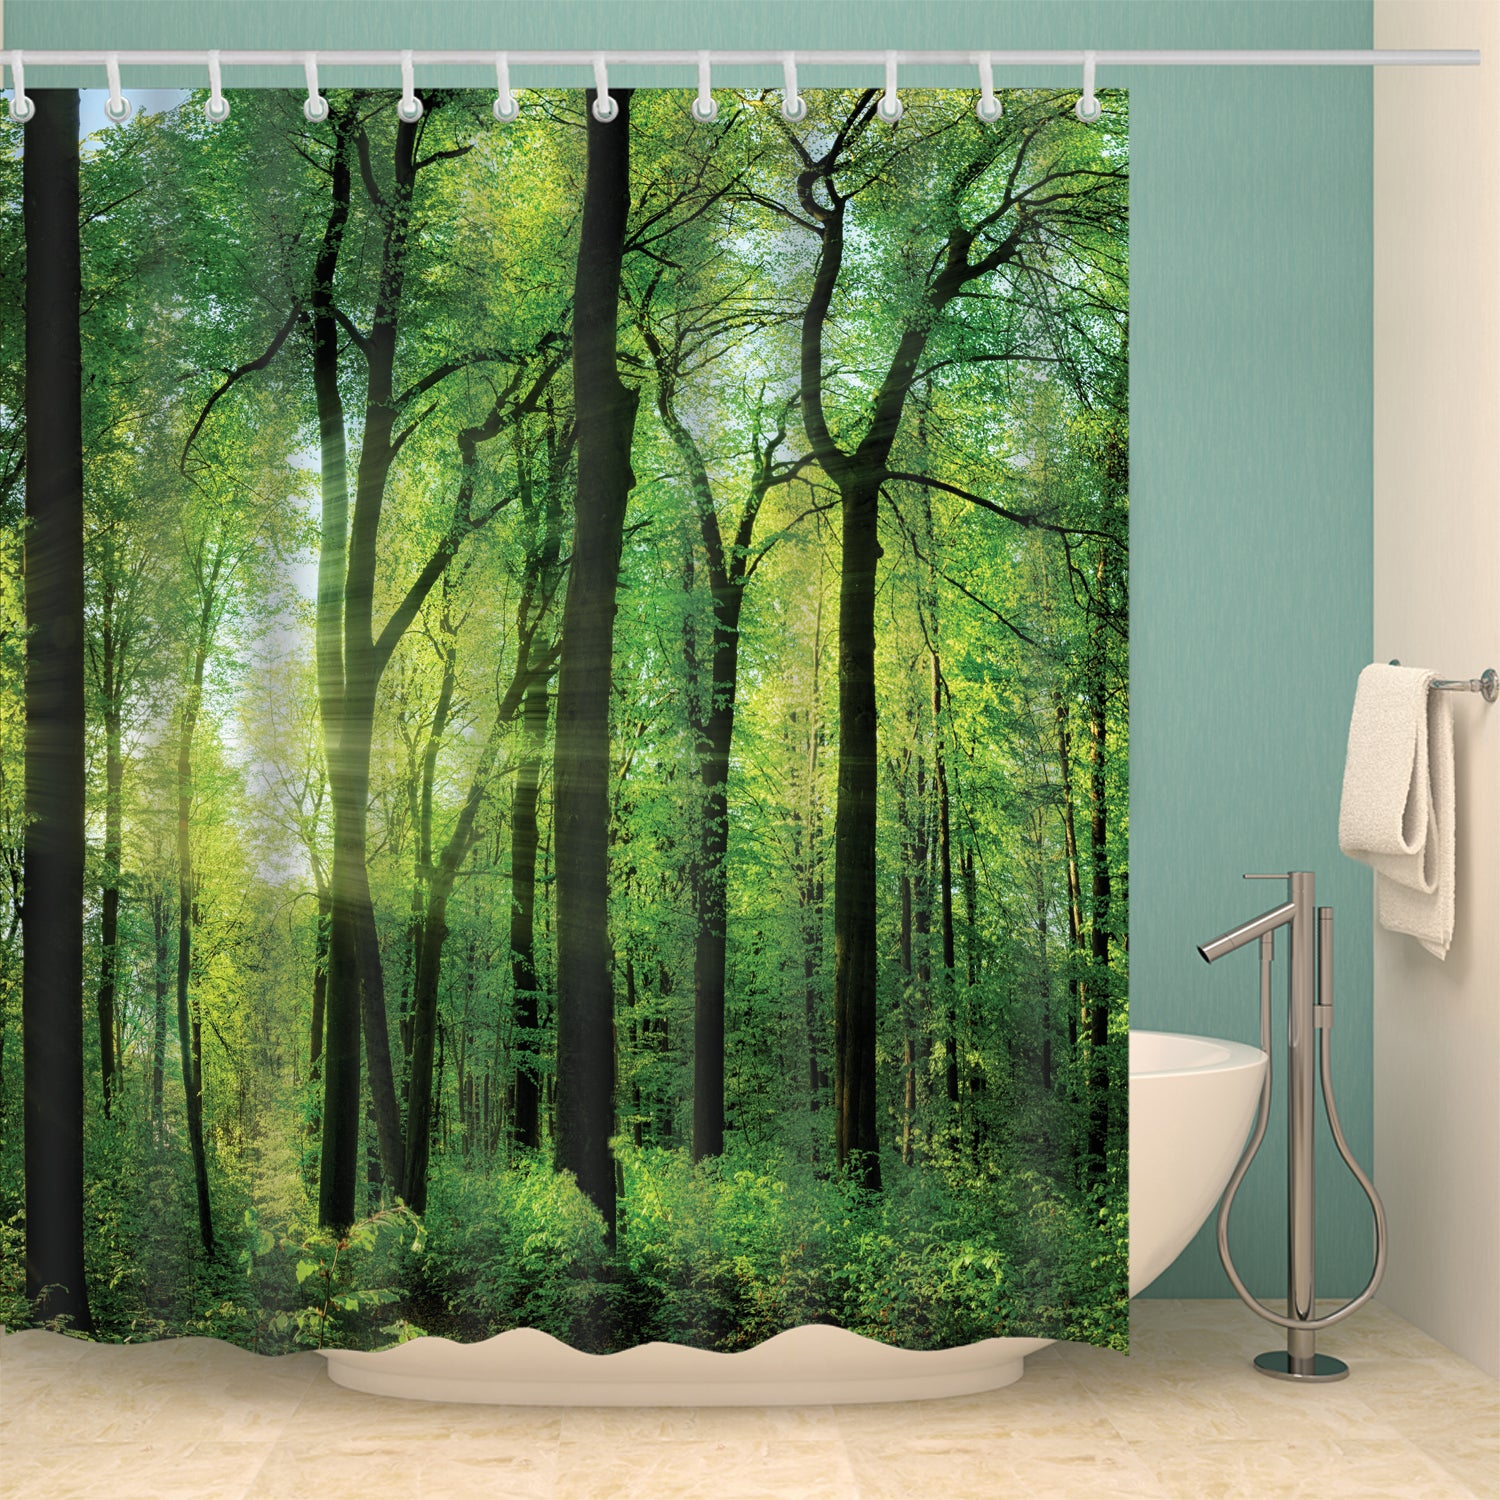 Lapse of the Sun Mossy Green Forest Landscape Shower Curtain